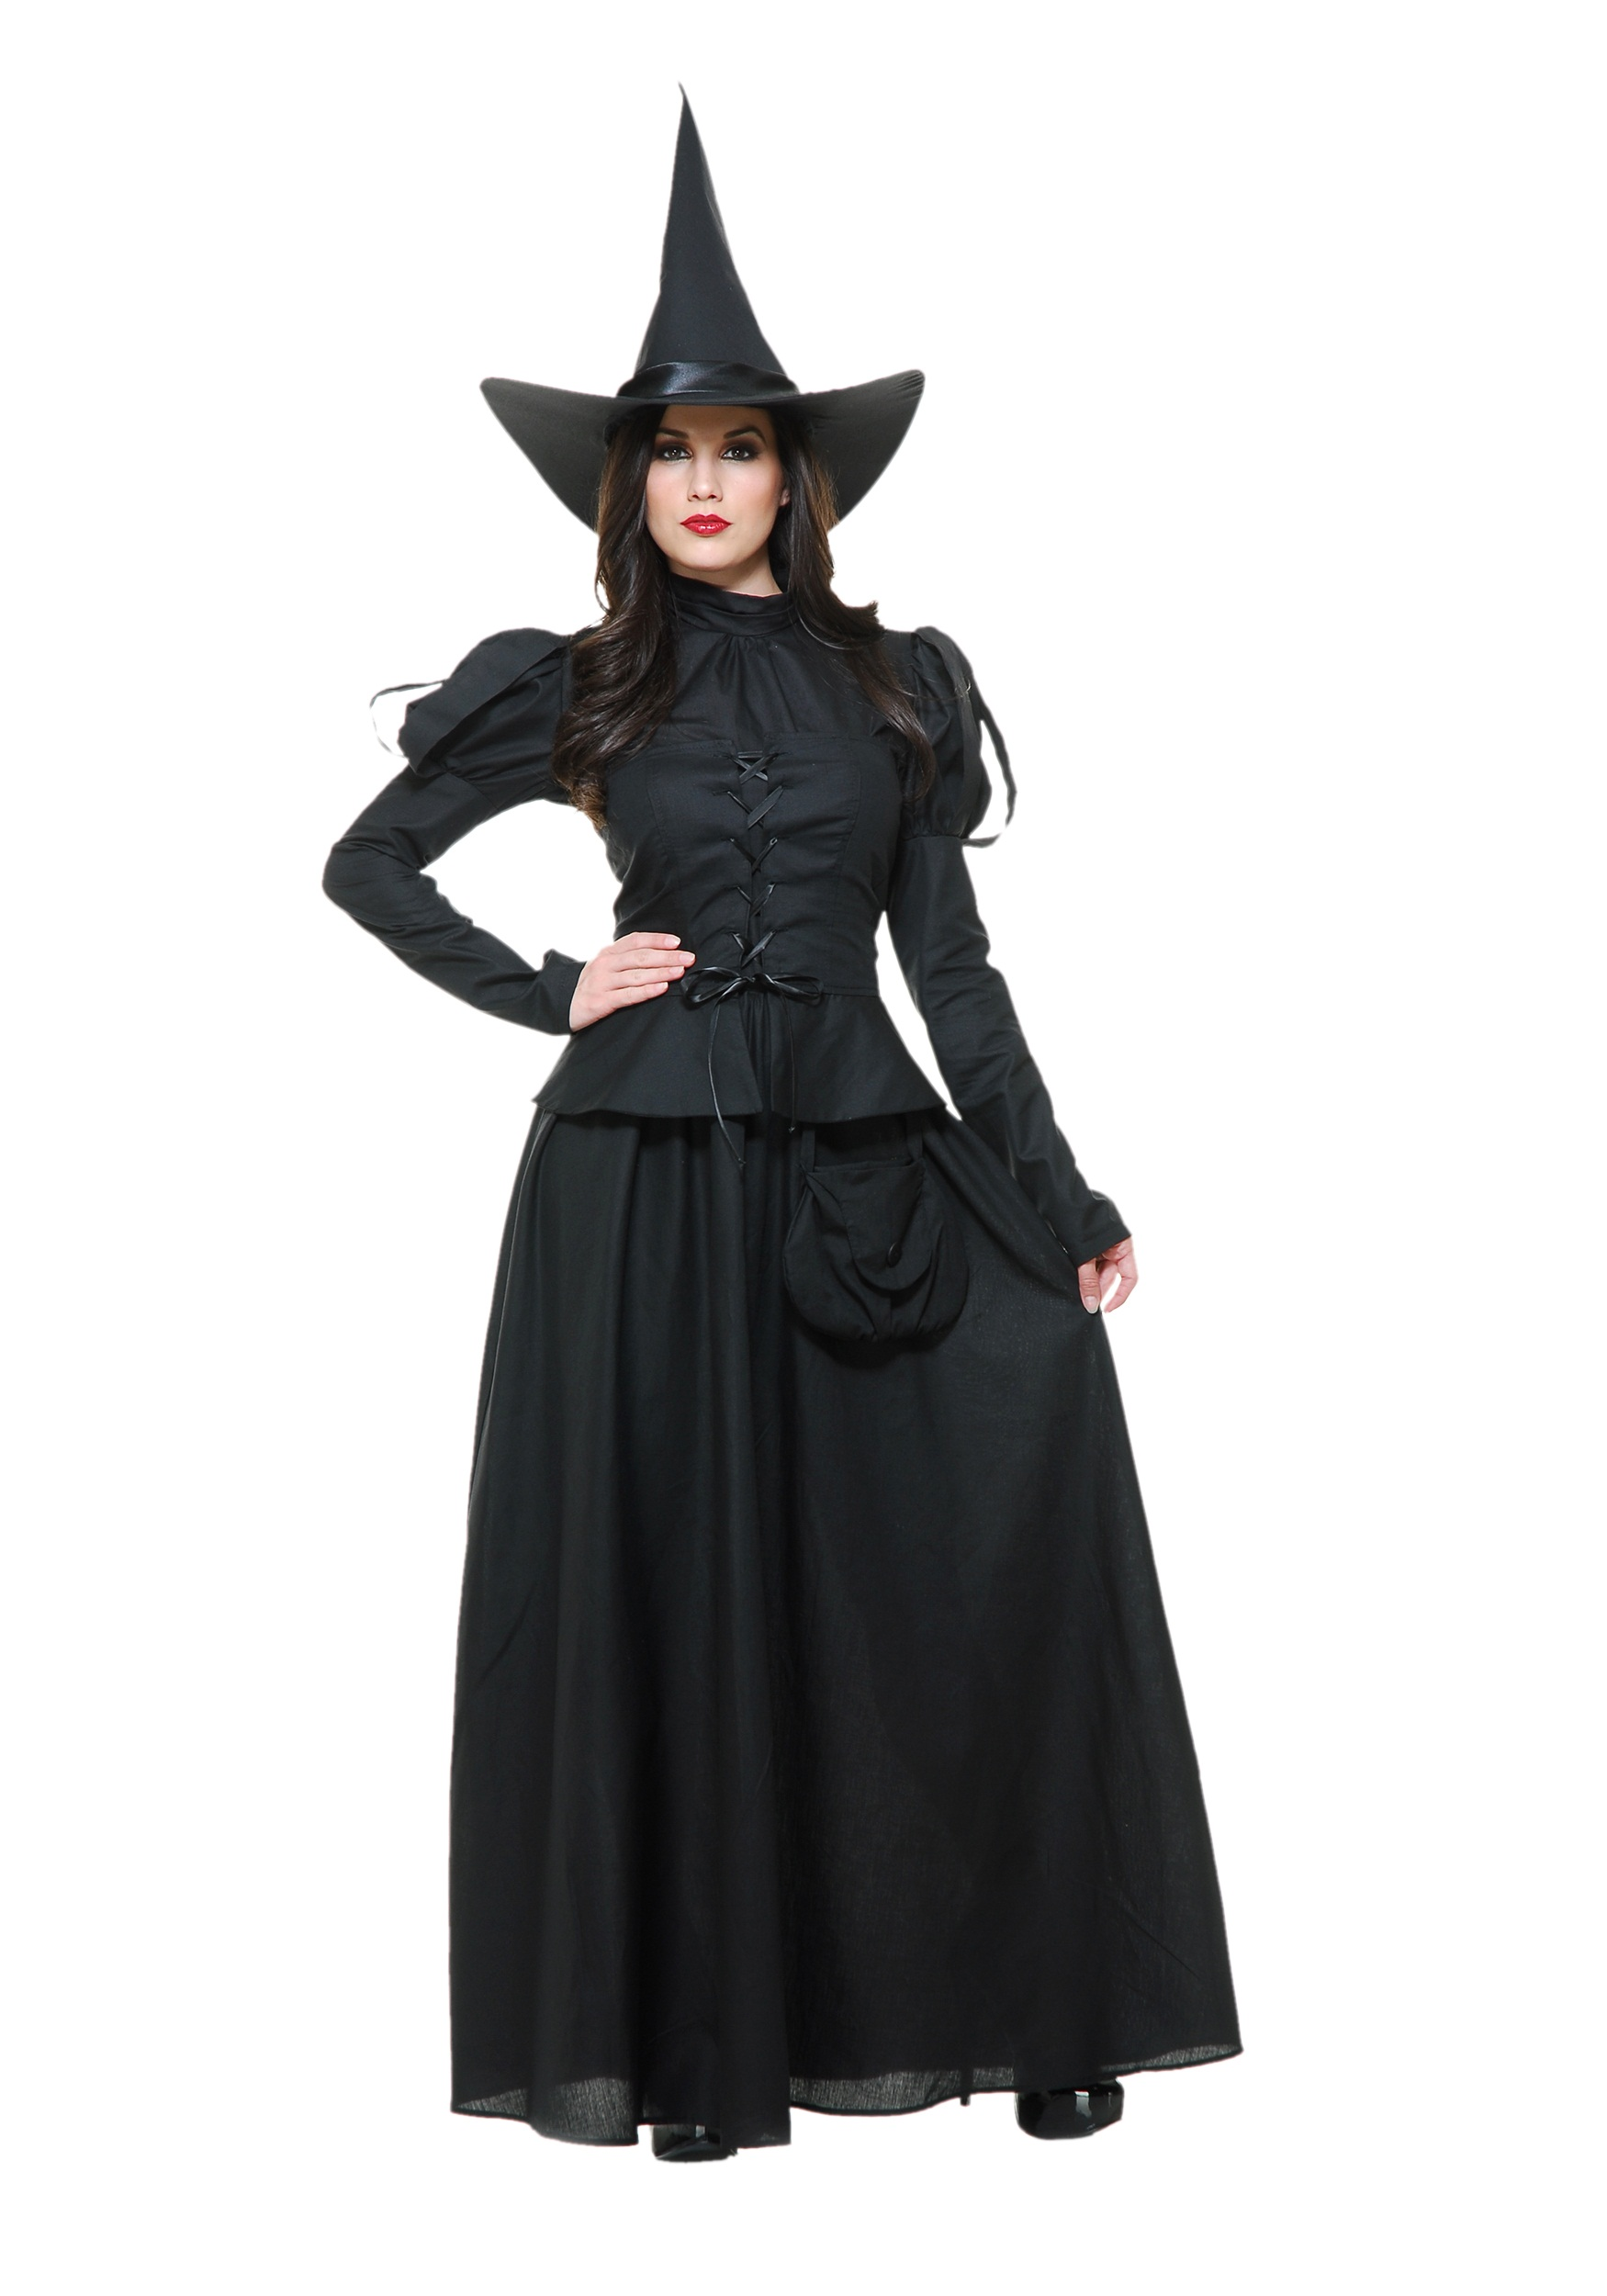 a3079556af4 Heartless Witch Adult Costume